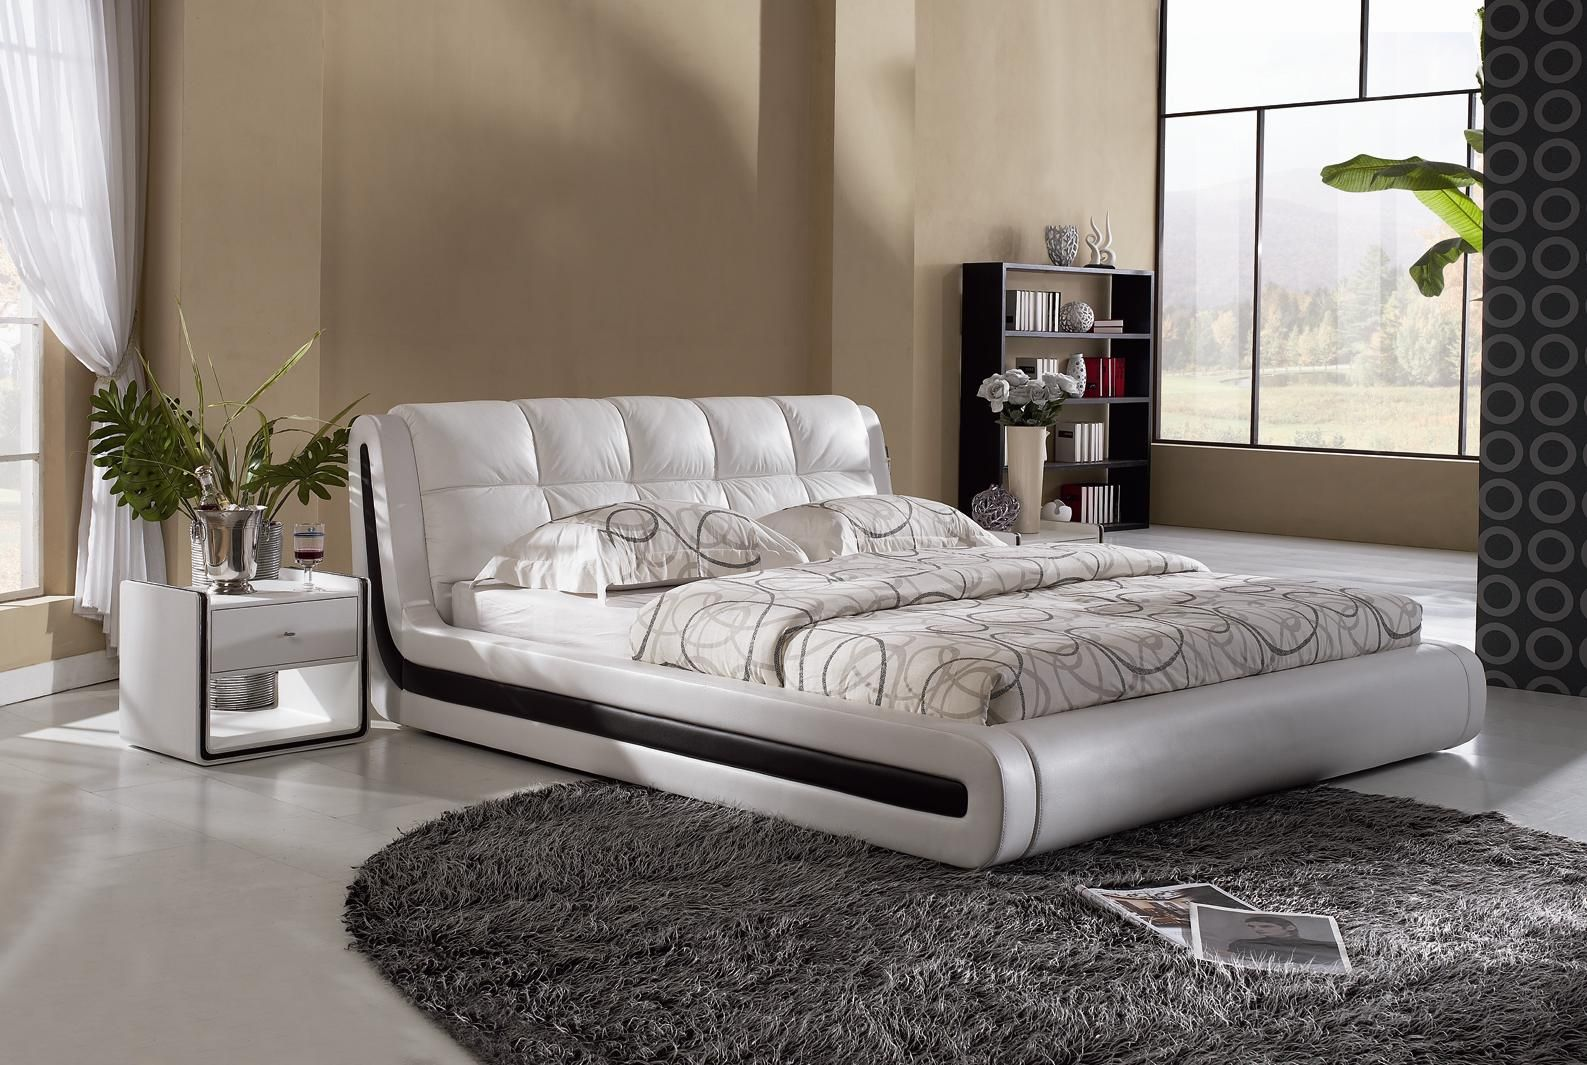 Modern bed designs home interior designer adult bedroom for Modern bedroom interior designs